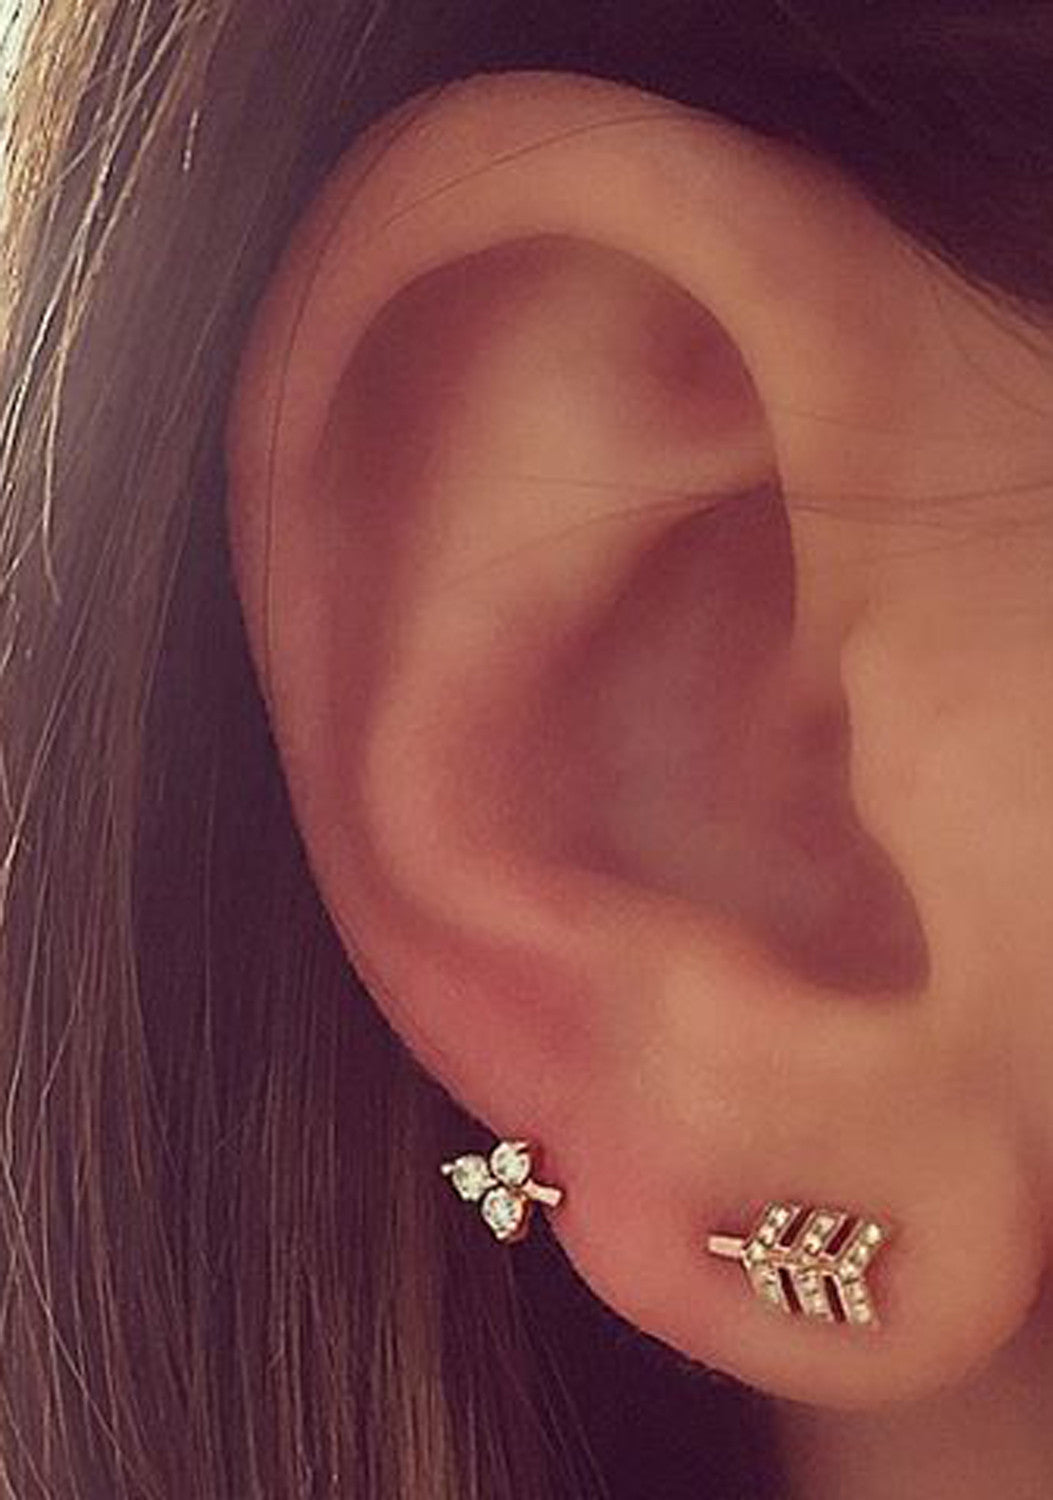 Simple Minimalistic Ear Piercing Ideas at MyBodiArt.com - Crystal Ear Climber Arrow Earrings